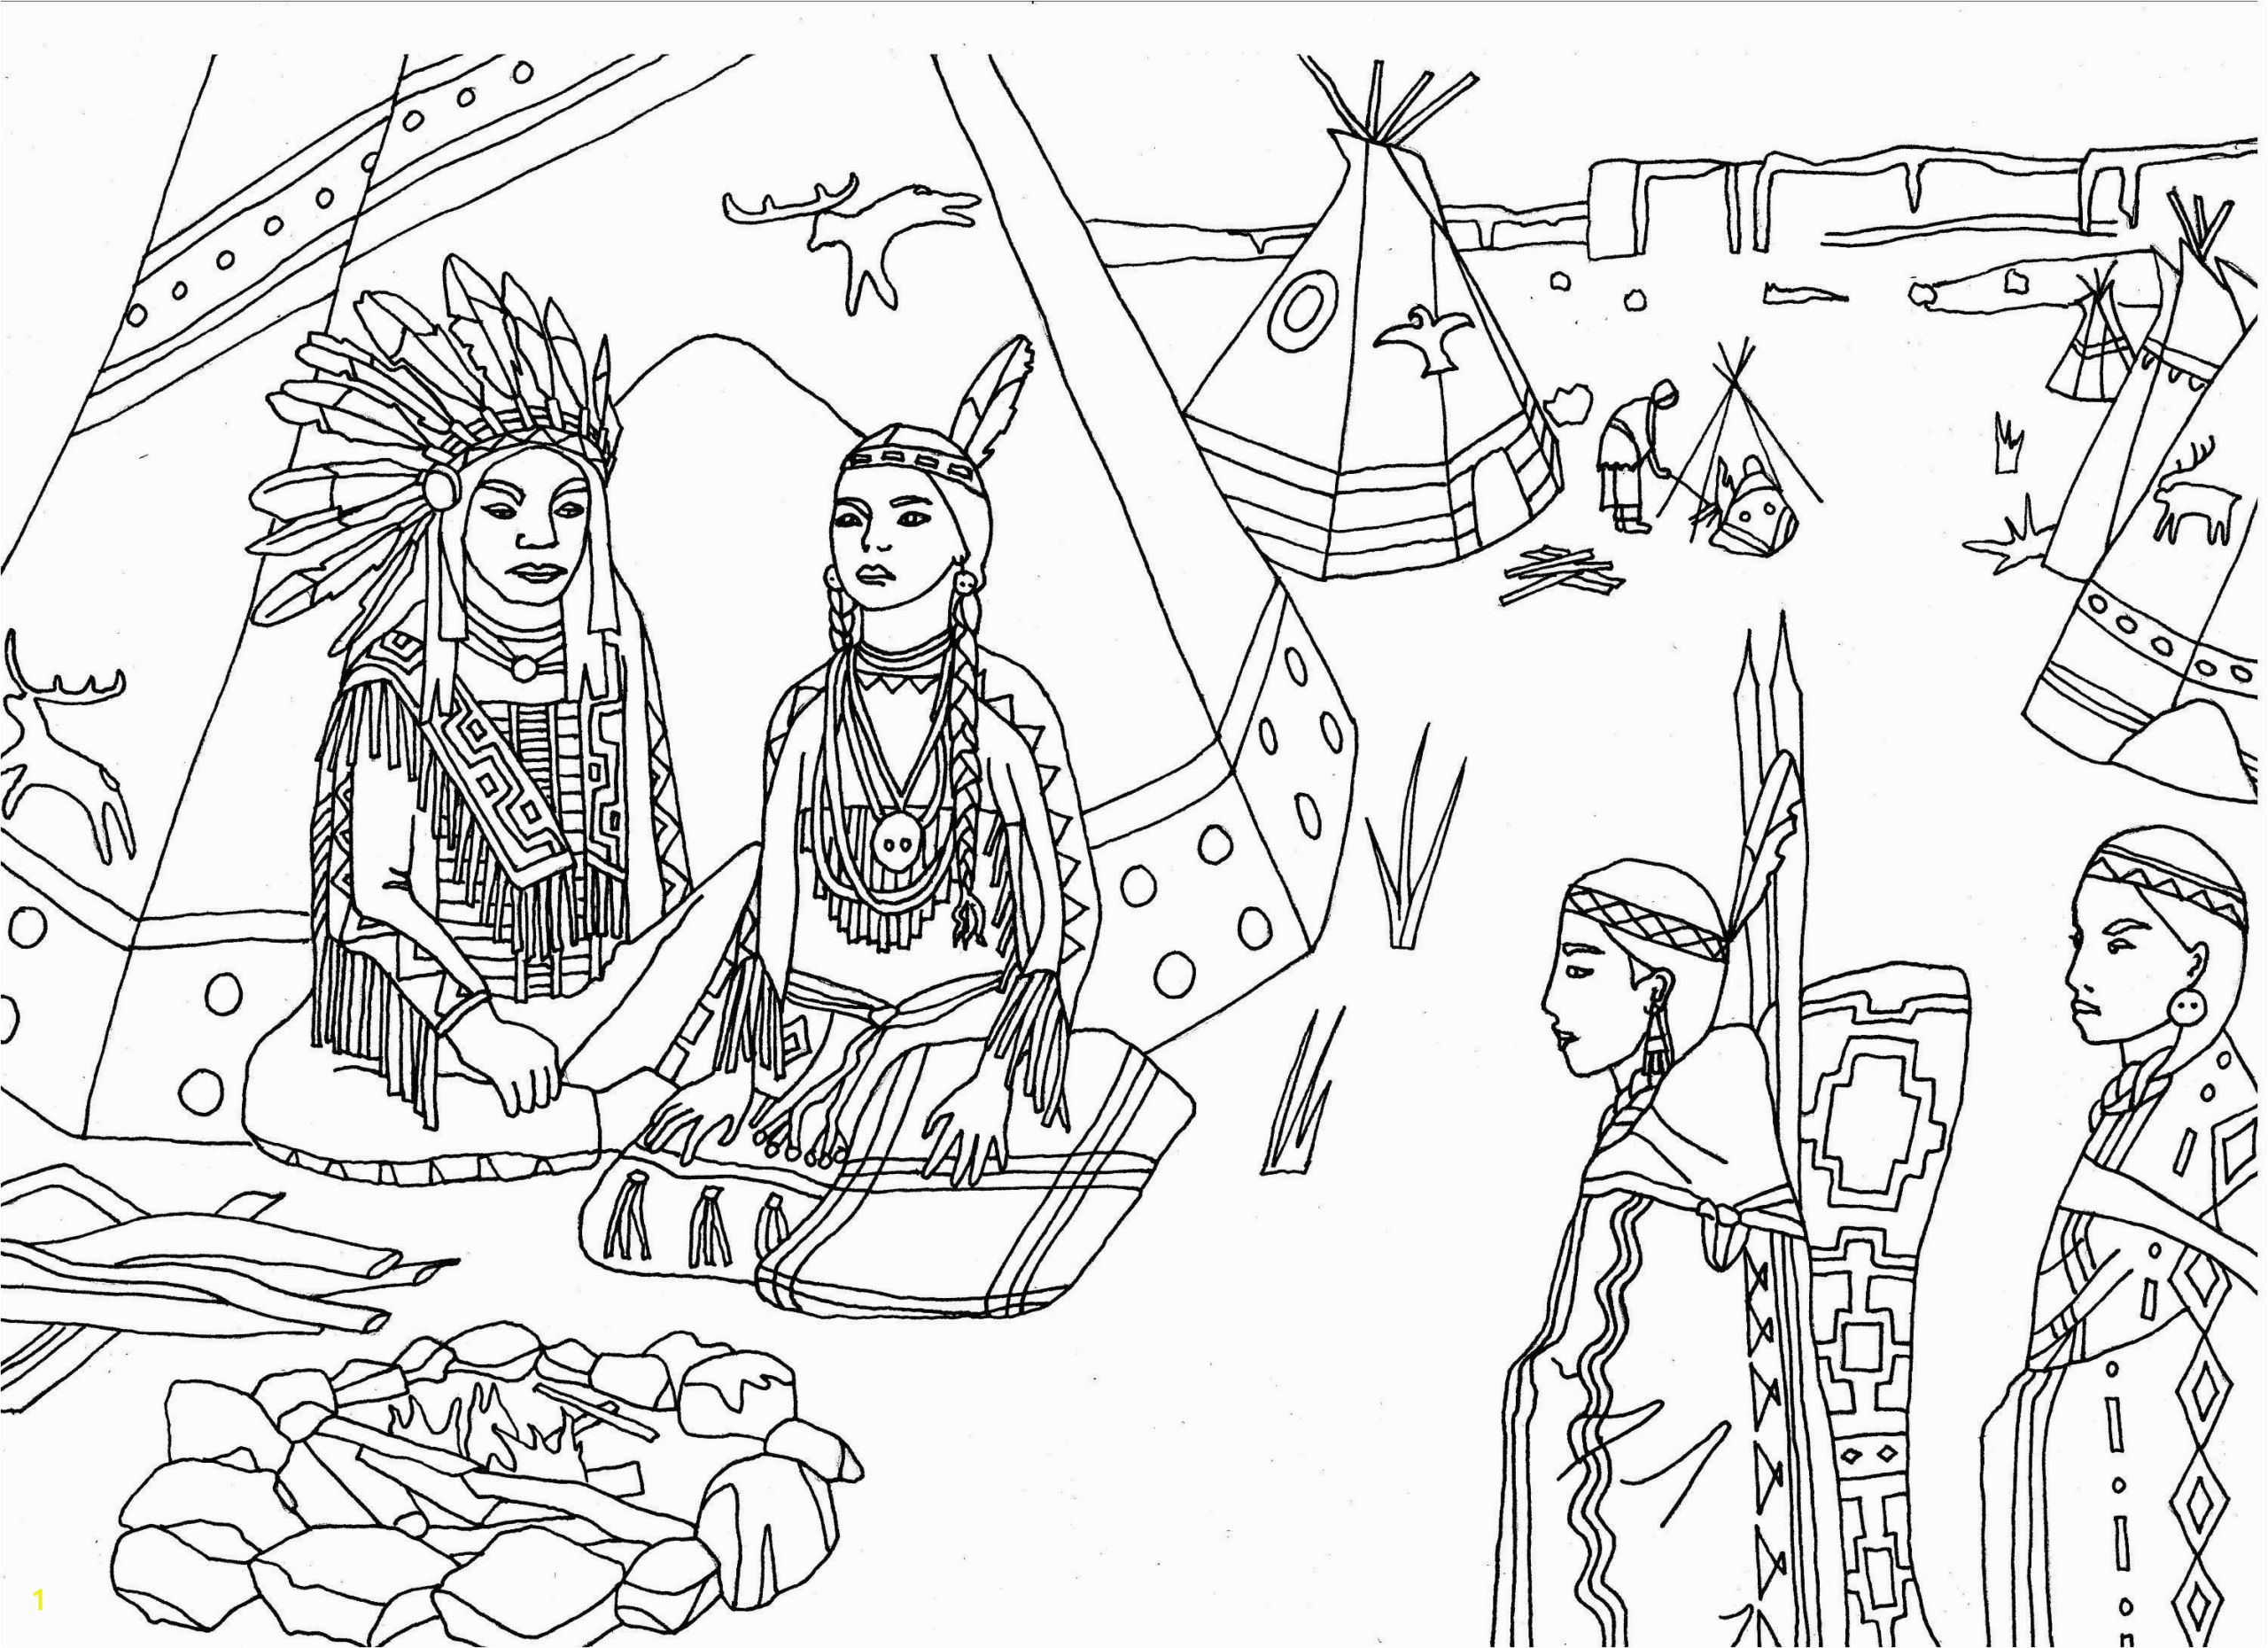 free coloring pages native american lovely native american coloring page inspirational 18awesome indian of free coloring pages native american native american coloring pages